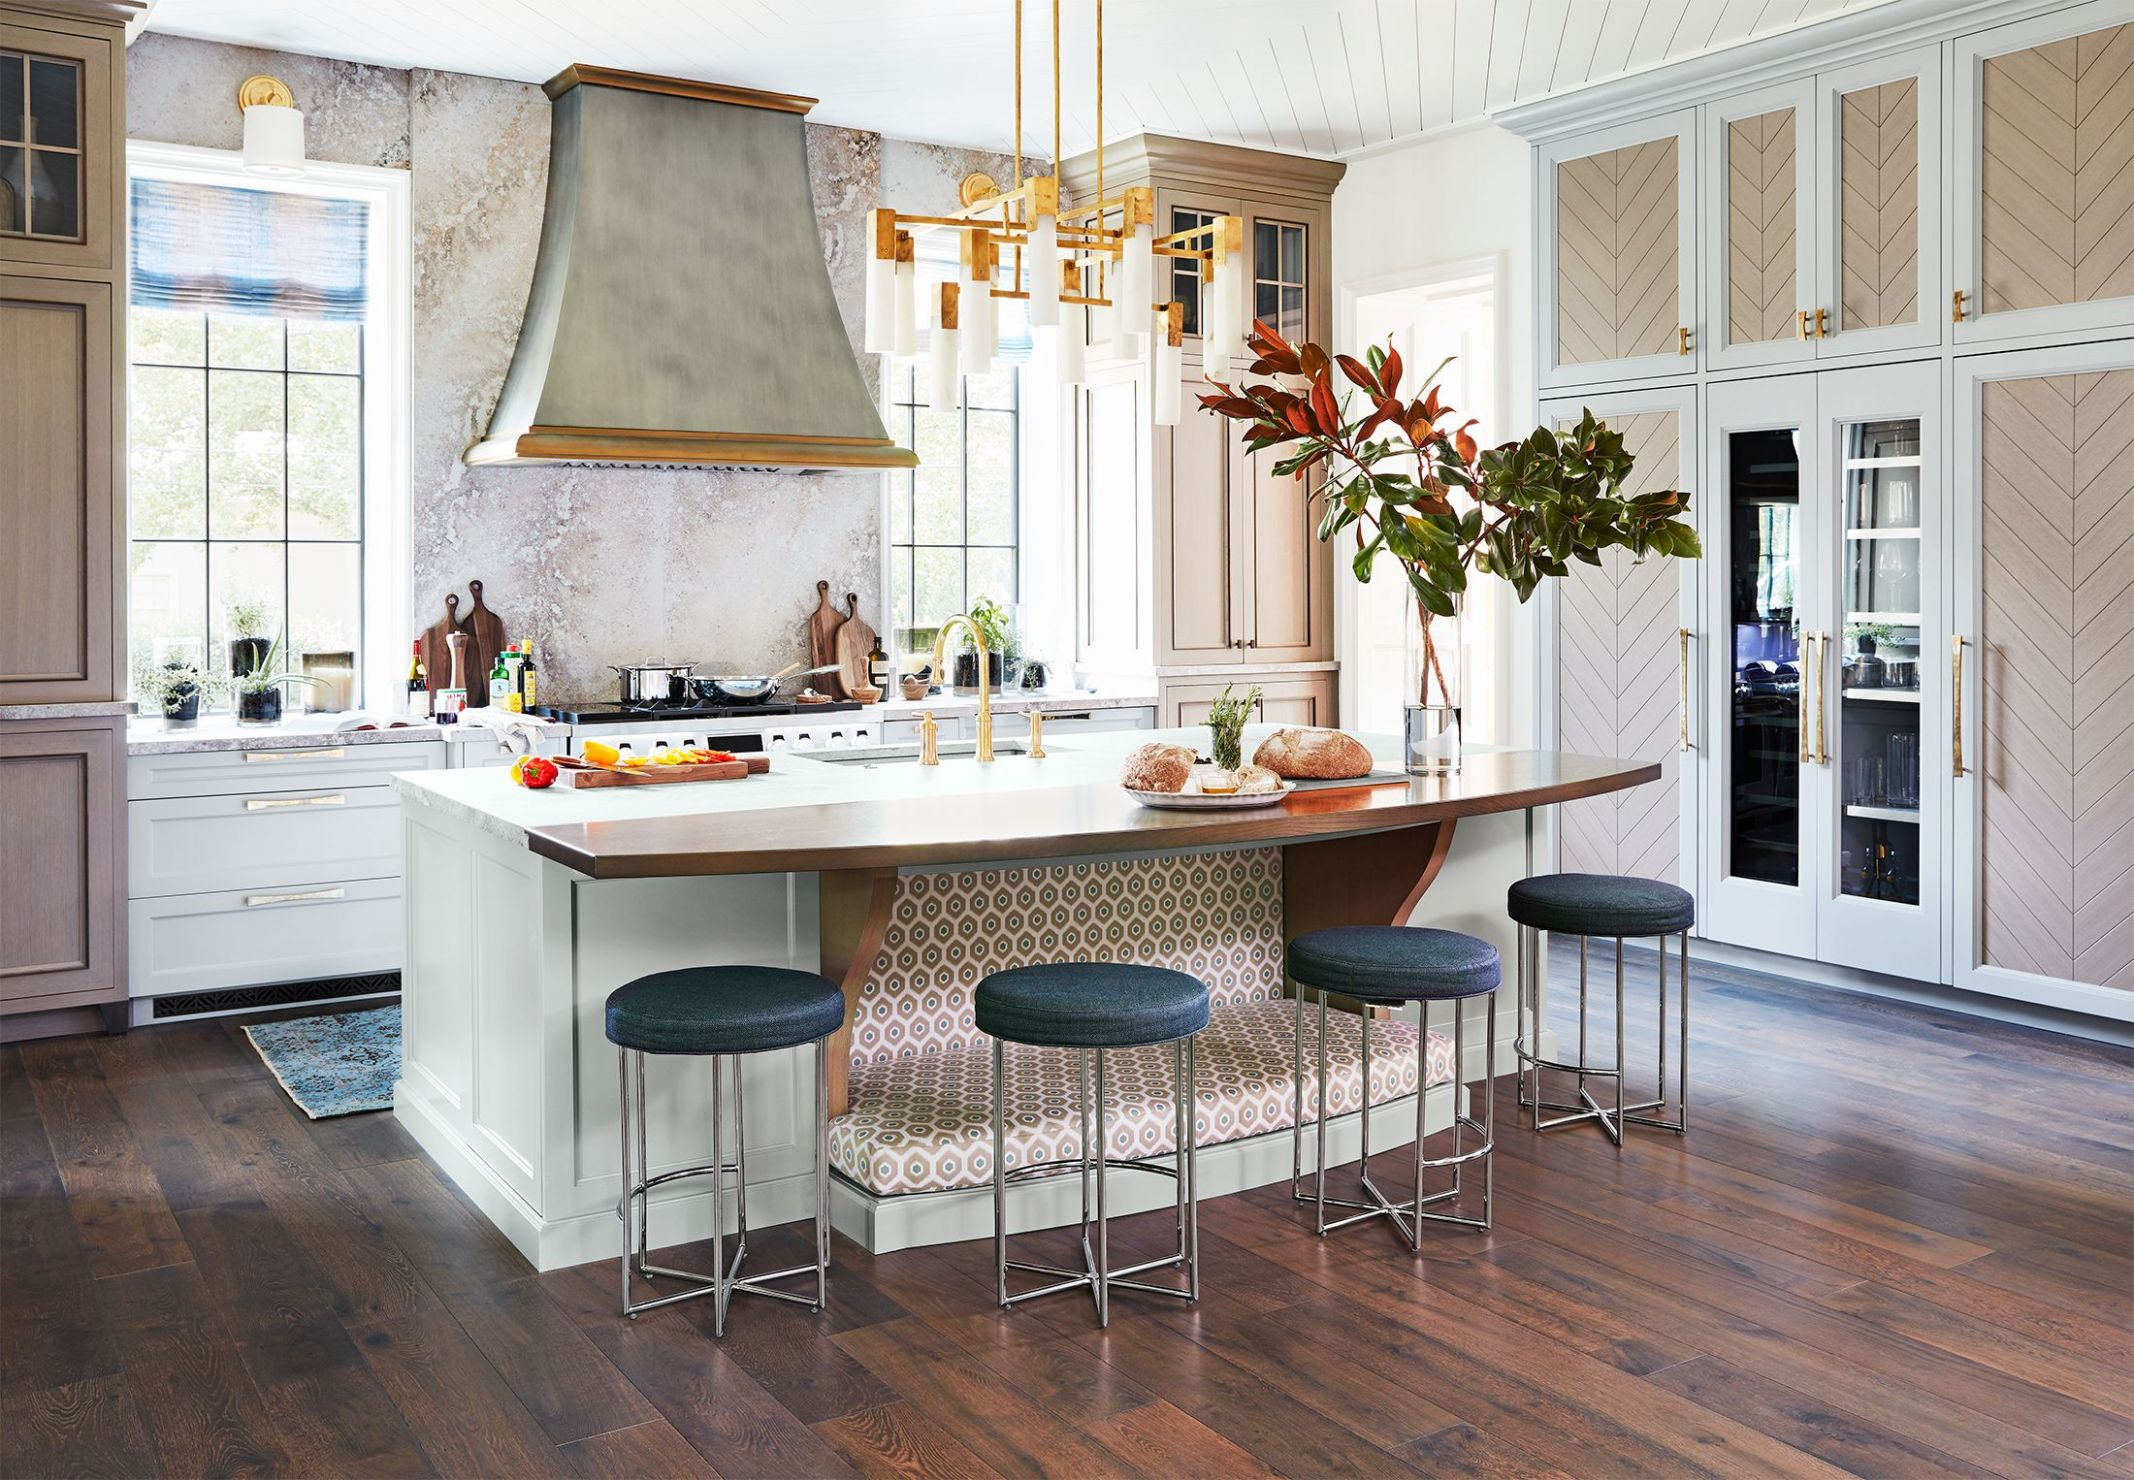 10 Kitchen Design & Remodeling Ideas - Pictures of Beautiful Kitchens - kitchen ideas photos